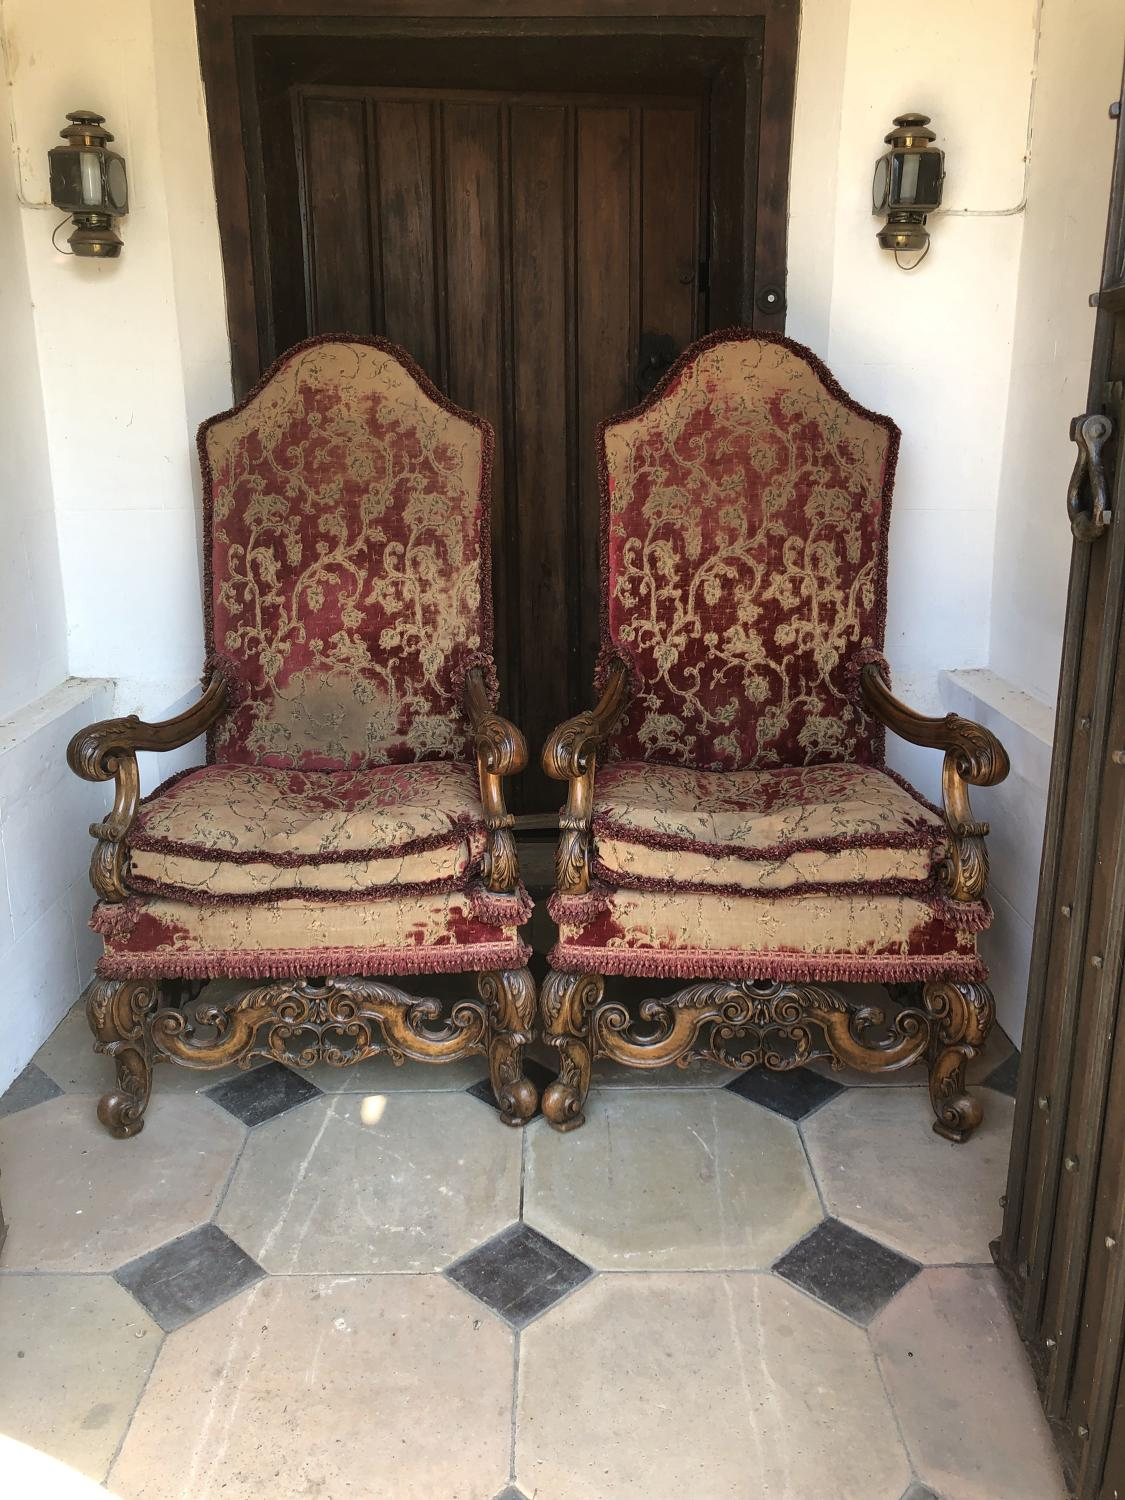 Pair of King & Queen Queen Anne Style Chairs - Quality Chairs c.1920